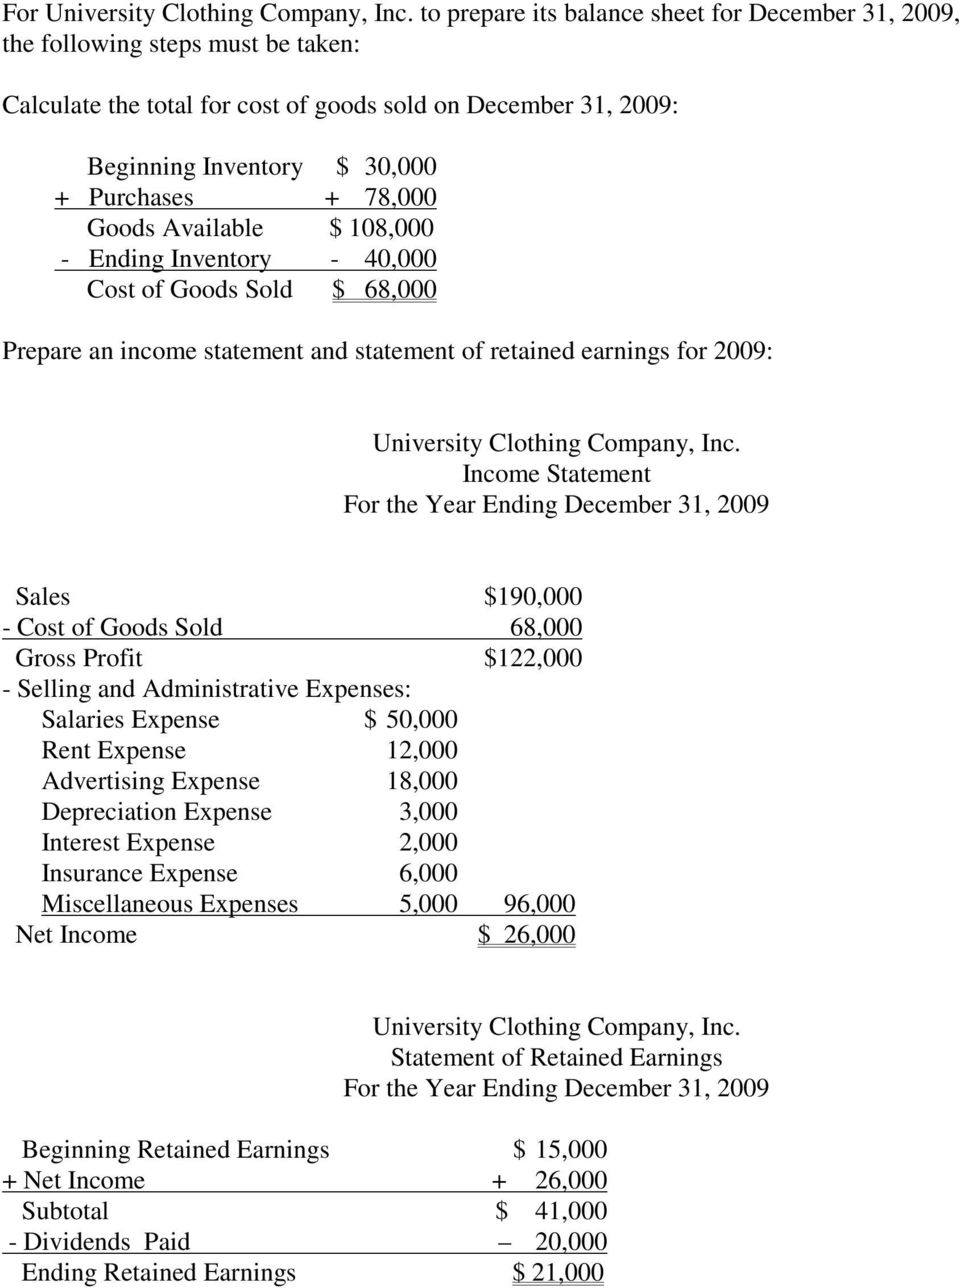 December 31, 2009 Sales $190,000 - Cost of Goods Sold 68,000 Gross Profit $122,000 - Selling and Administrative Expenses: Salaries Expense $ 50,000 Depreciation Expense 3,000 Interest Expense 2,000